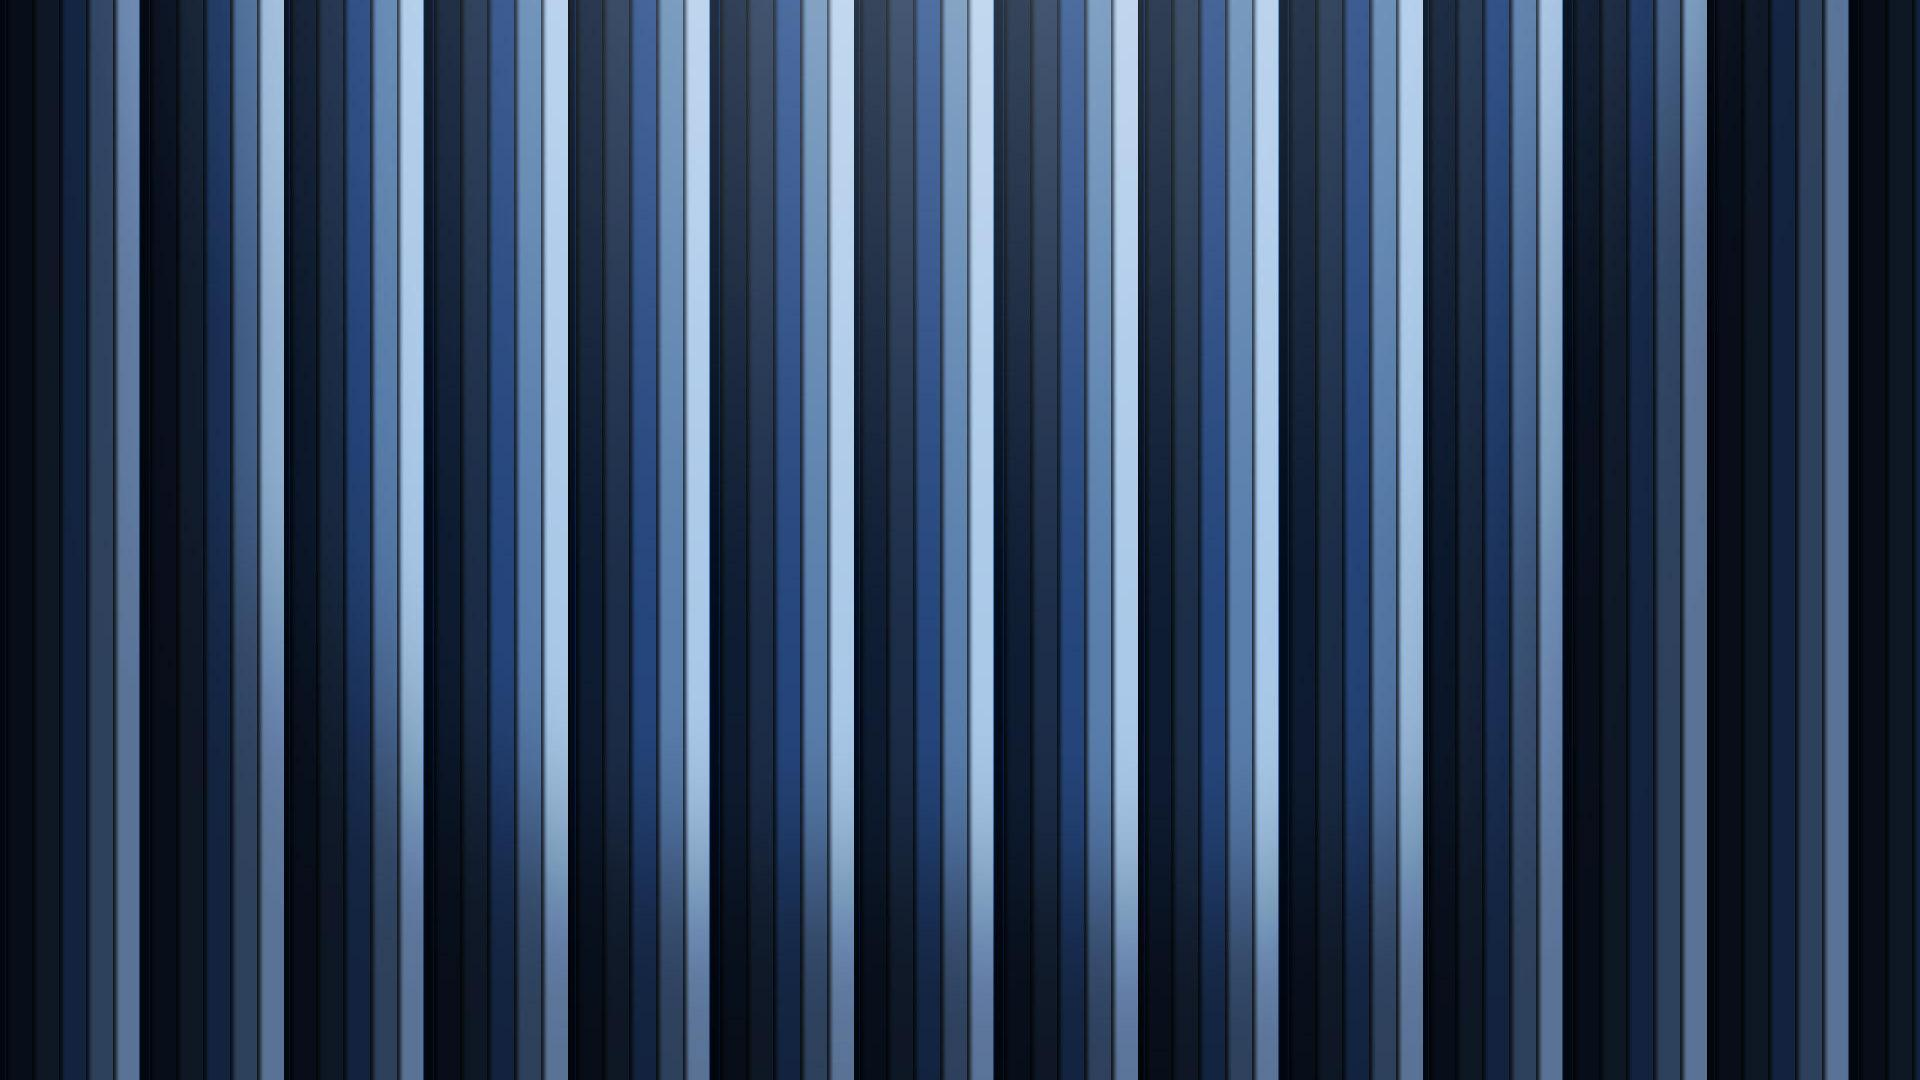 wallpaper stripes 2015   Grasscloth Wallpaper 1920x1080